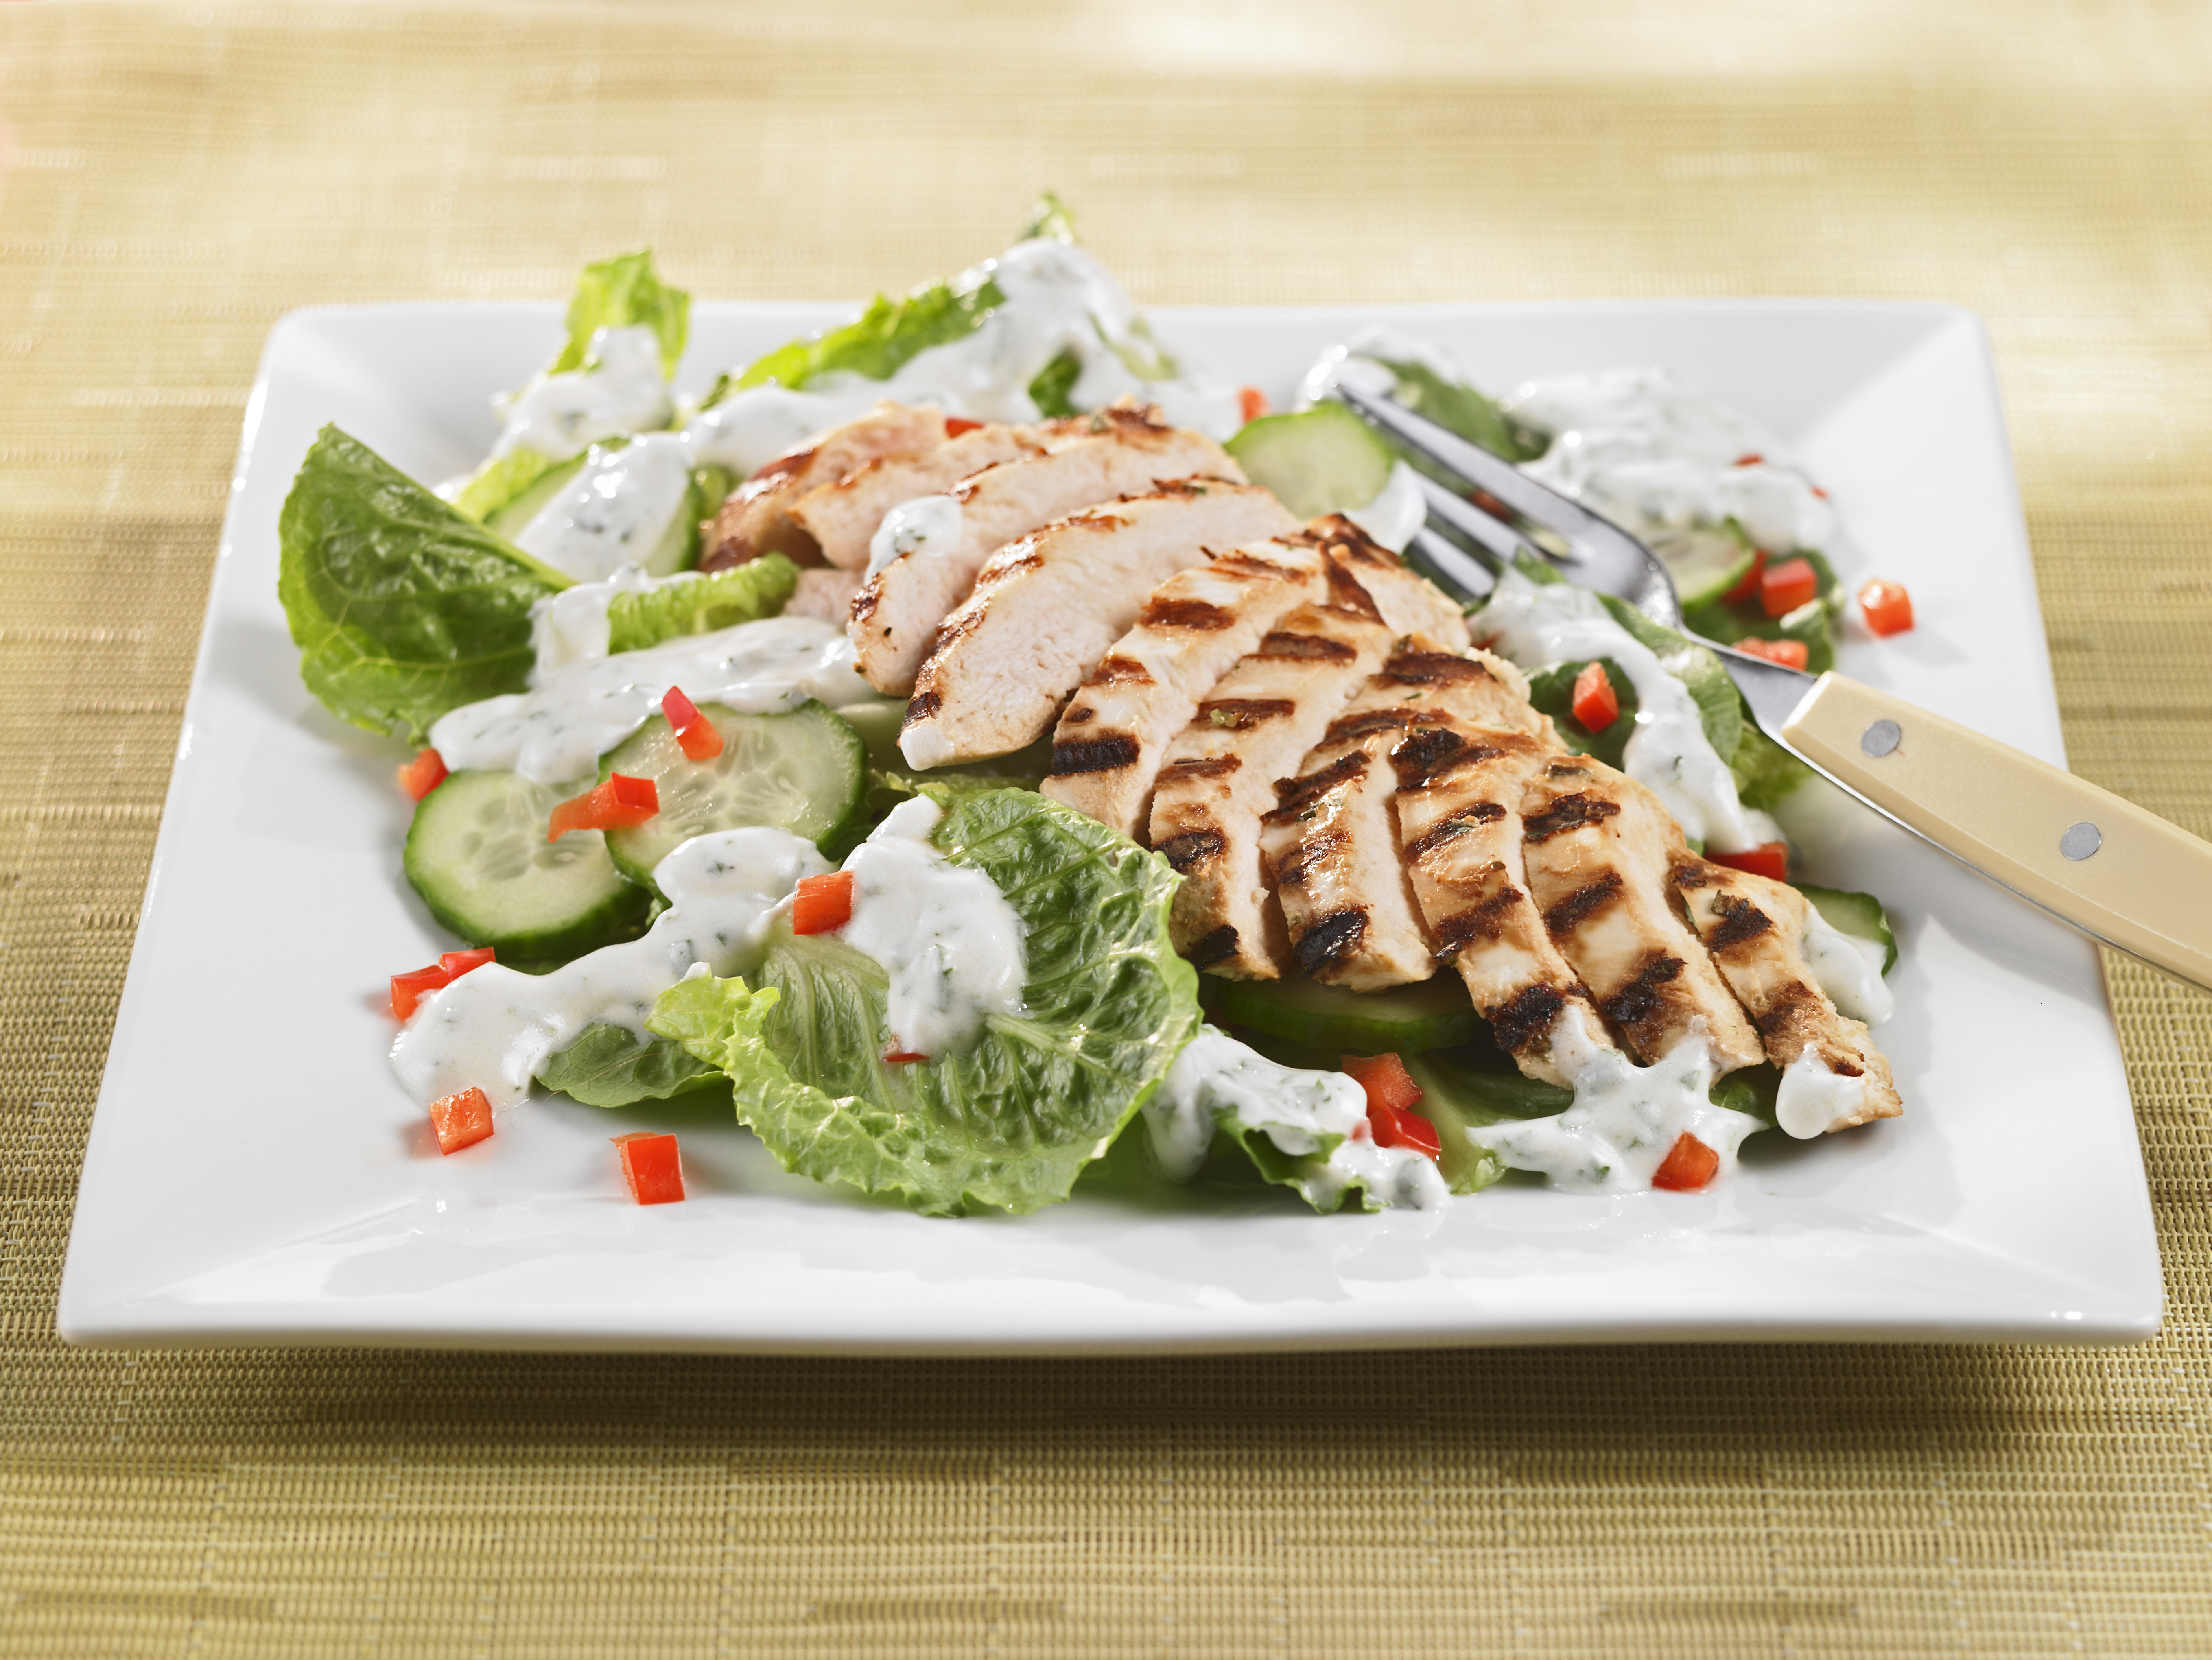 Chicken salad on a white plate